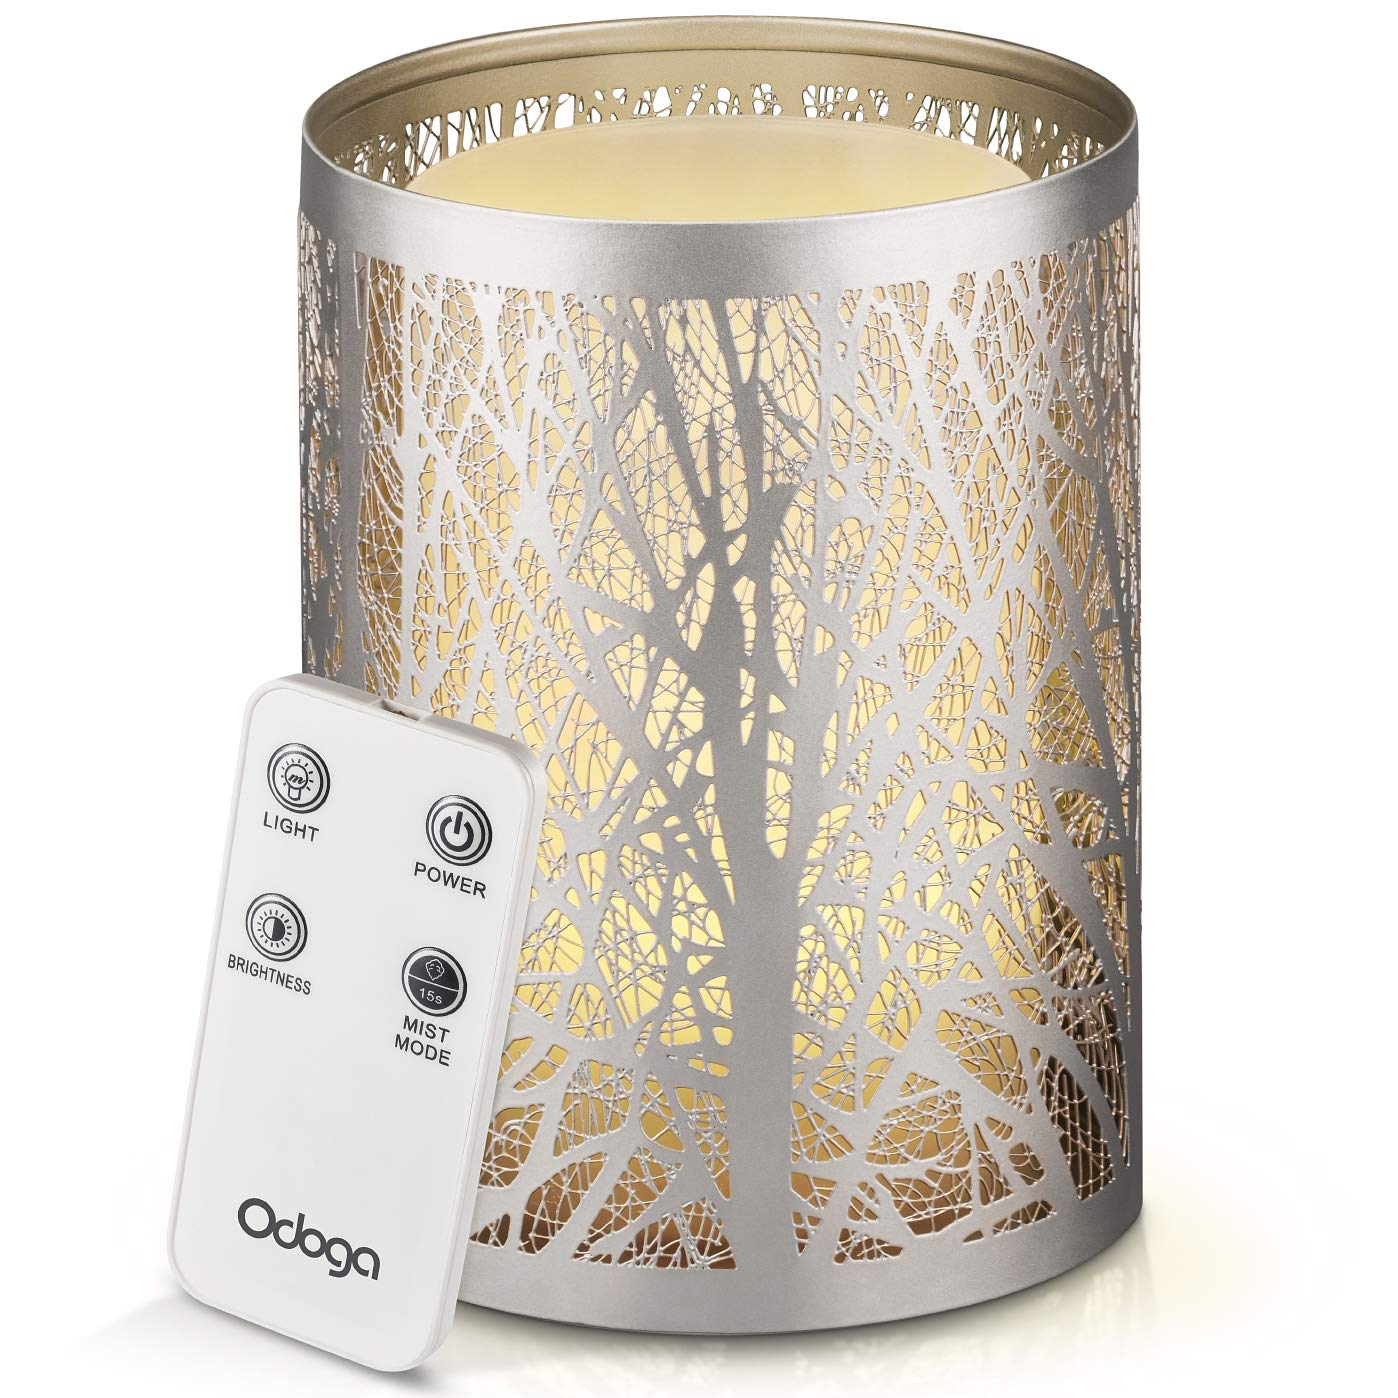 Odoga Aromatherapy Essential Oil Diffuser with Decorative Iron Cover, Ultrasonic Quiet Cool Mist Humidifier with Warm White Color Candle Light Effect, Remote Control & Low Water Auto Shut-Off by Odoga